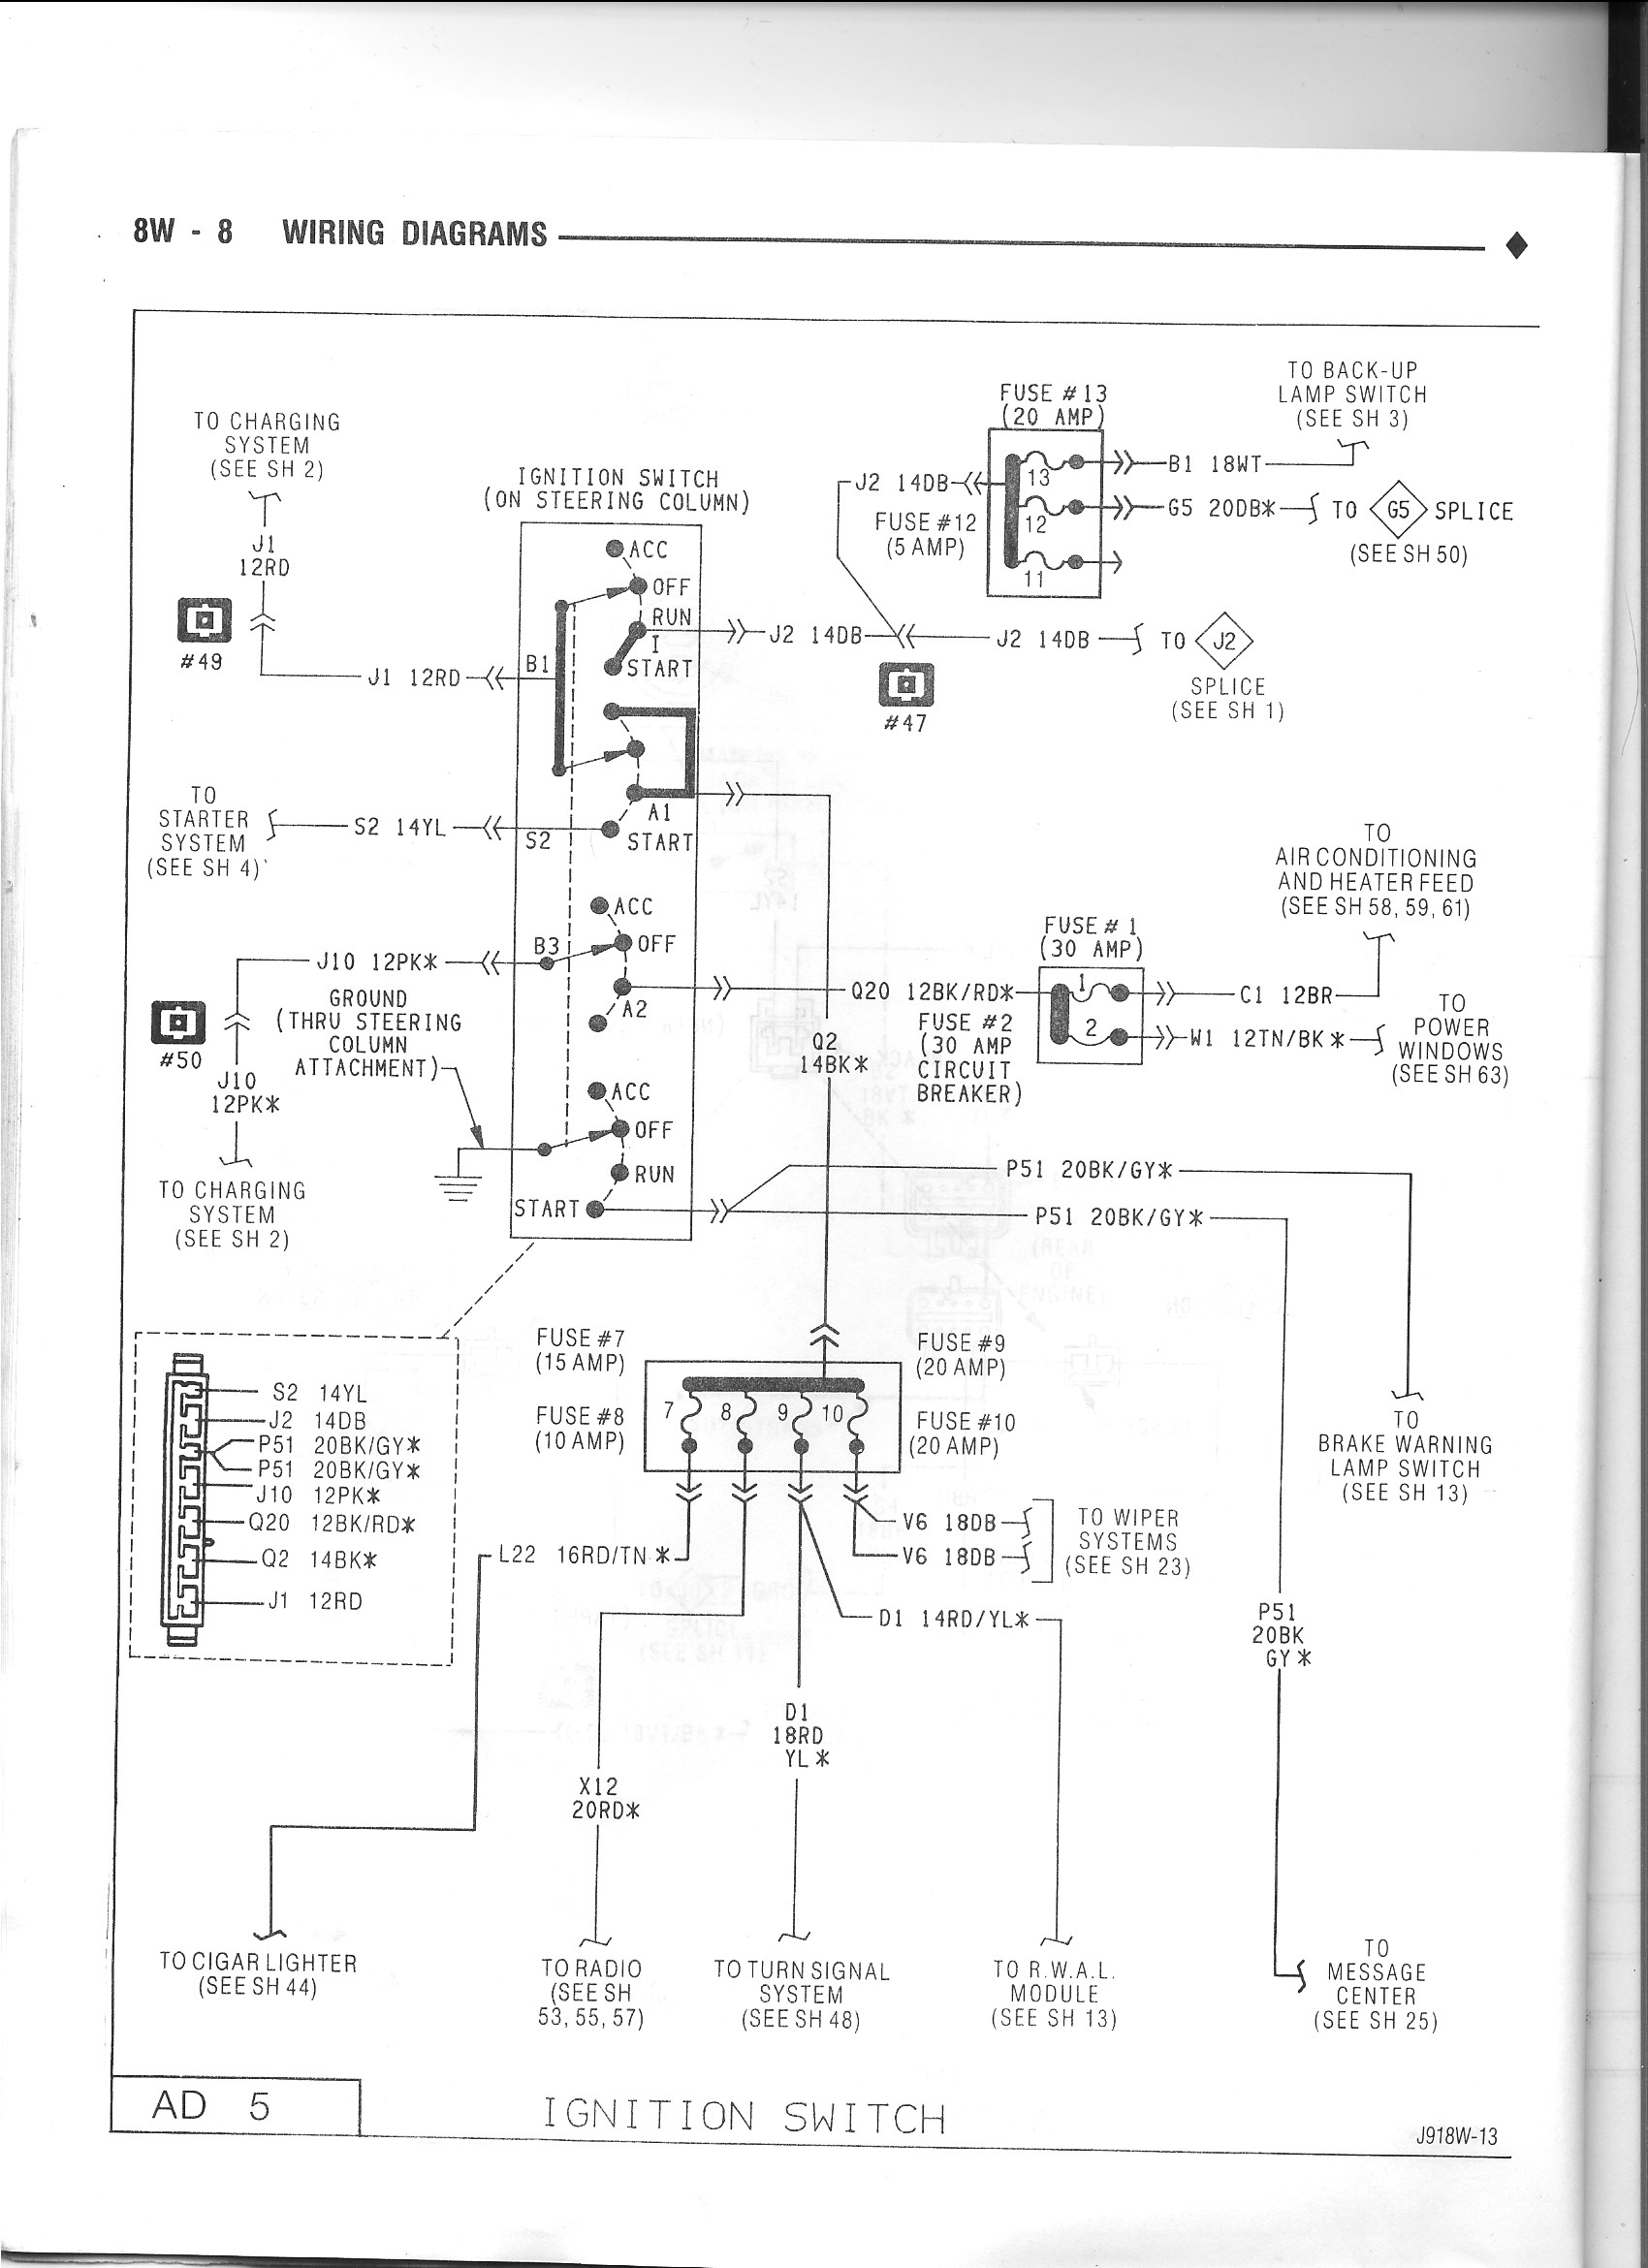 91 dodge ram wiring diagram wiring diagram document guide 91 Mustang Wiring Diagram 91 dodge ram w250 wiring diagram get free image about wiring diagram 91 camaro wiring diagram 91 dodge ram wiring diagram